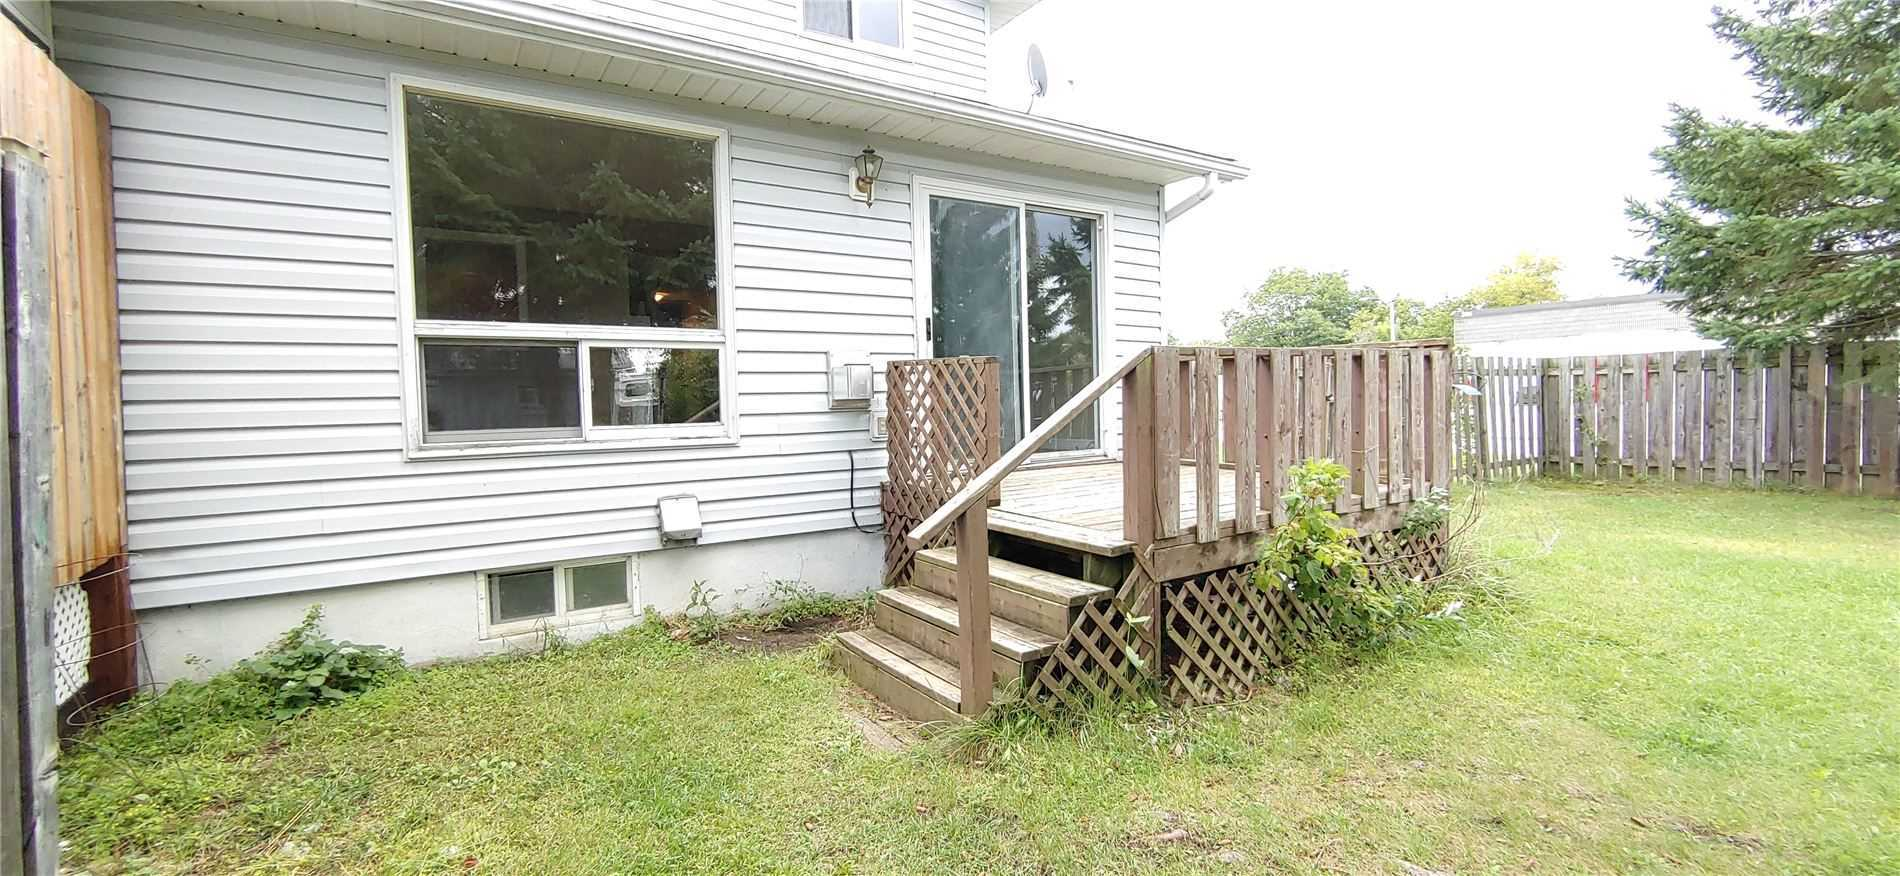 273 Clarence St (27)